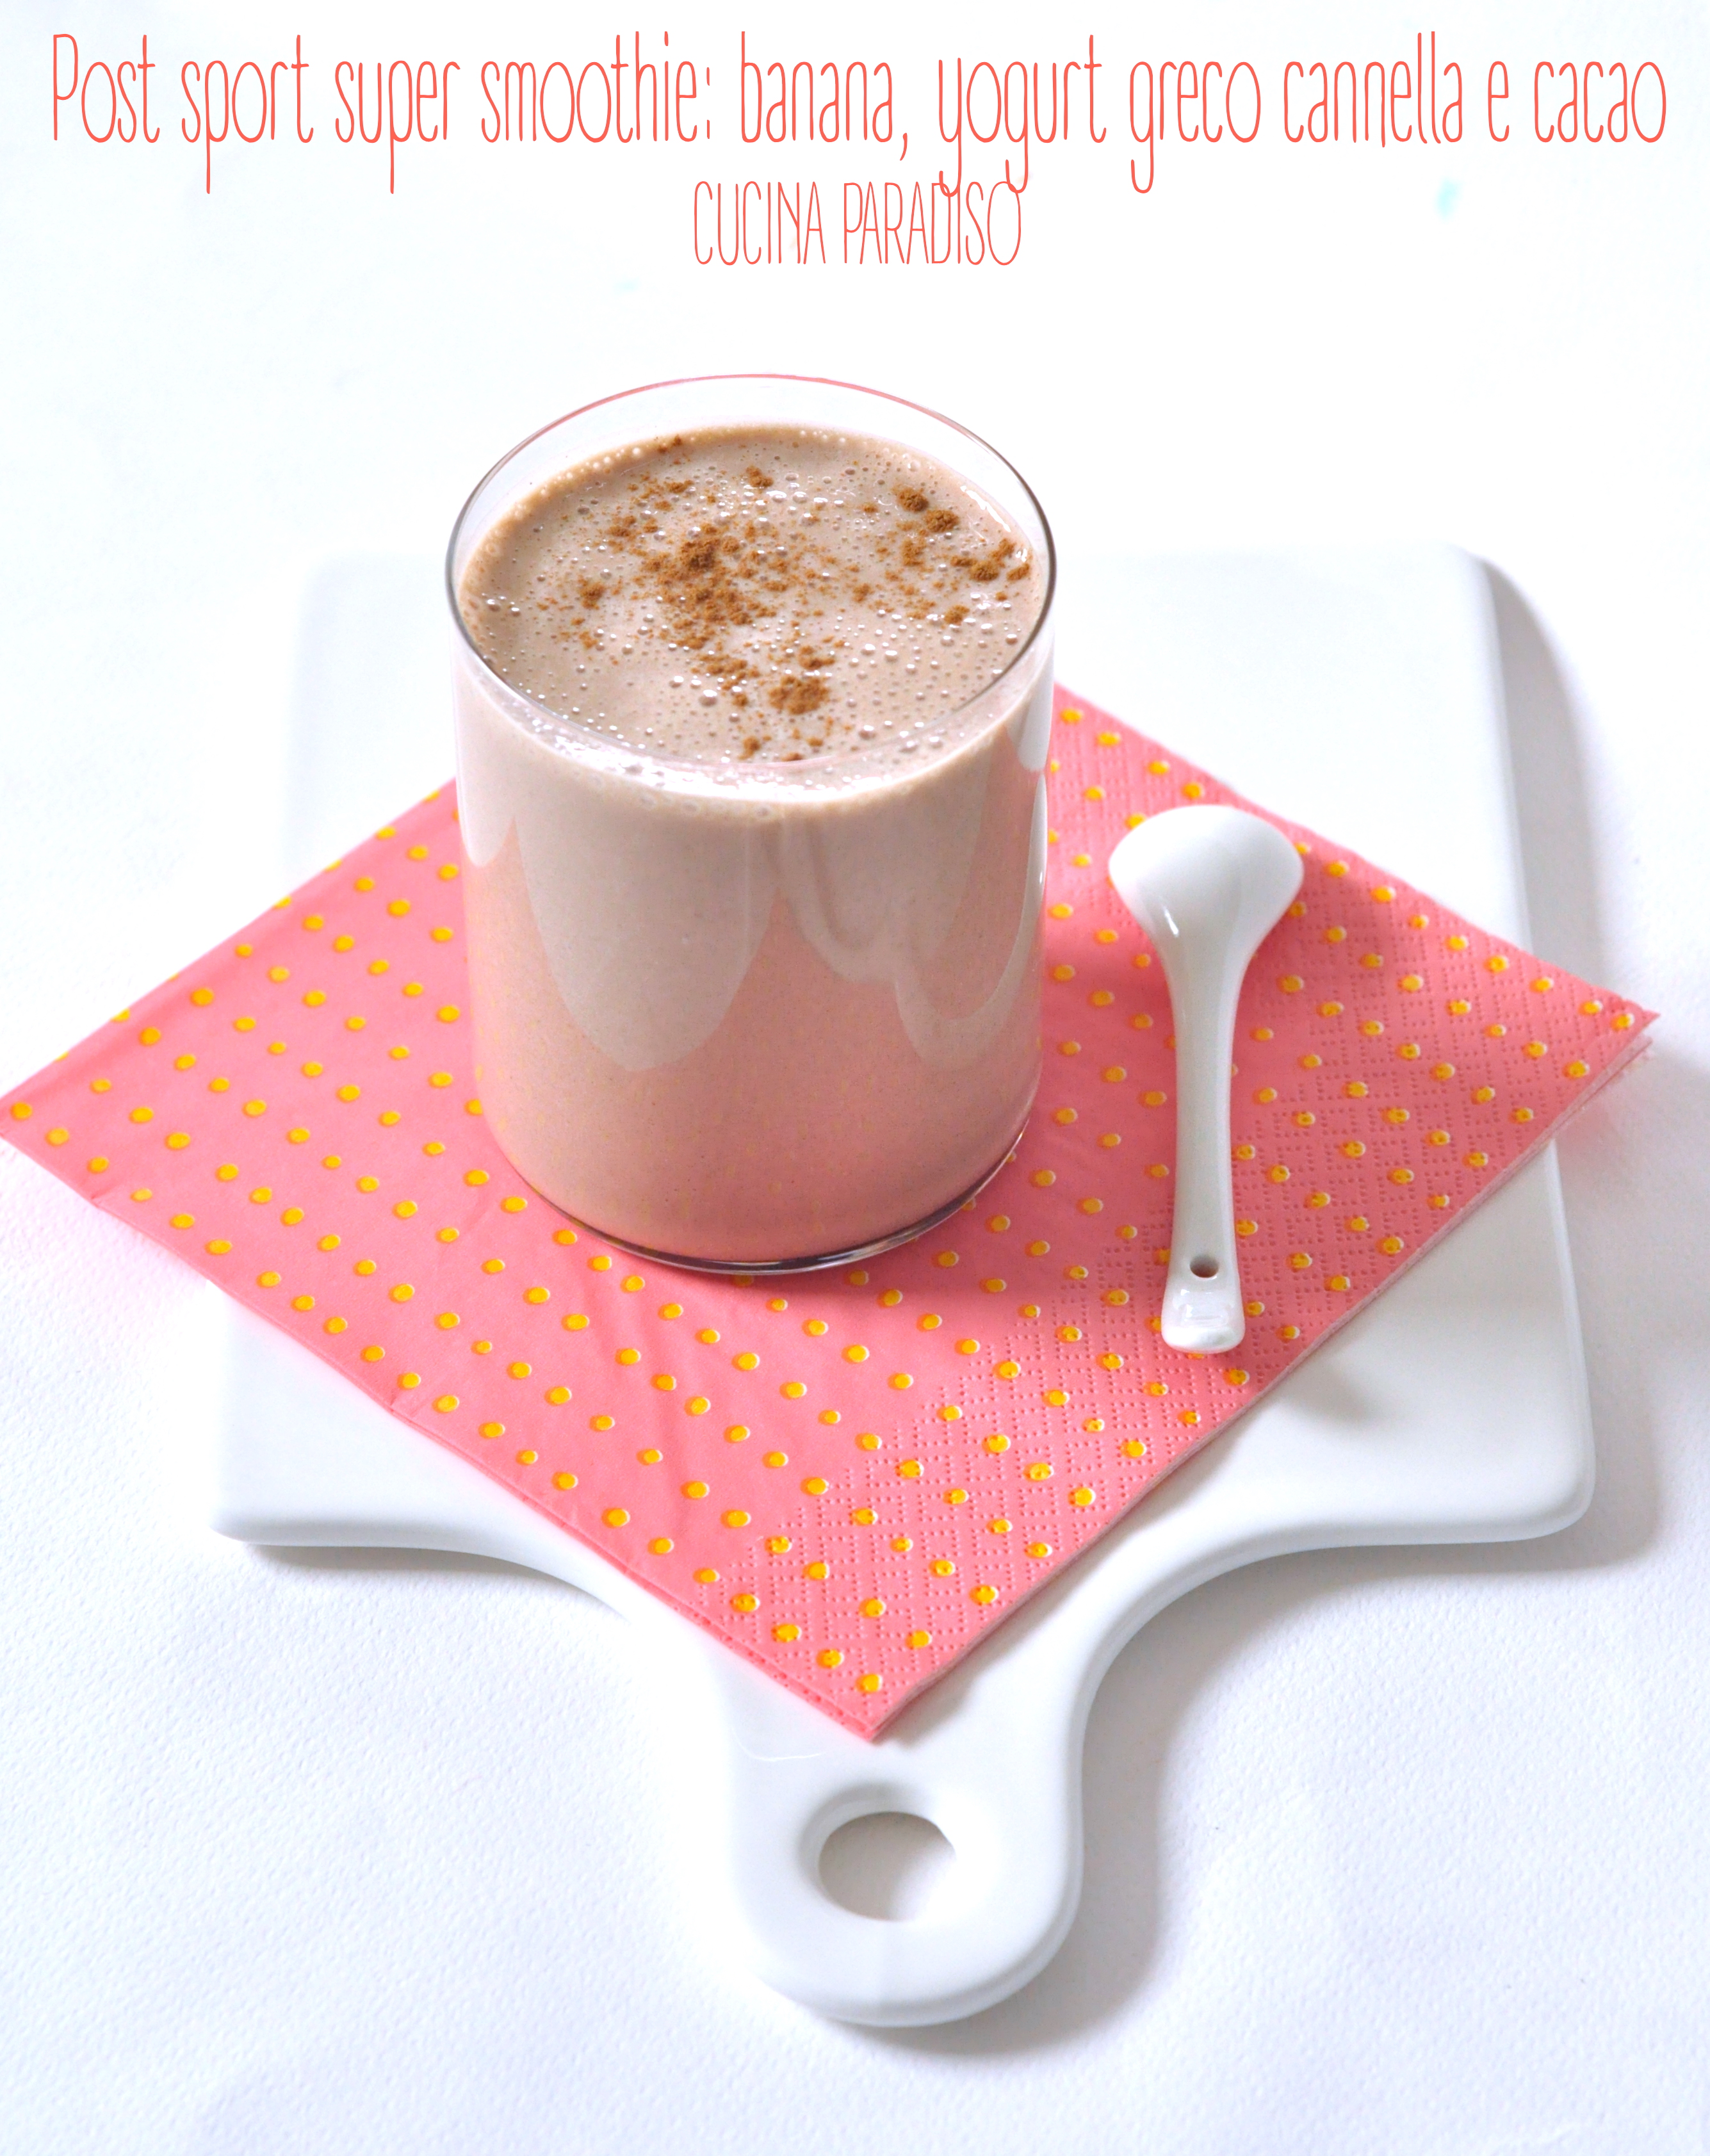 Post sport super smoothie- banana, yogurt greco cannella e cacao3